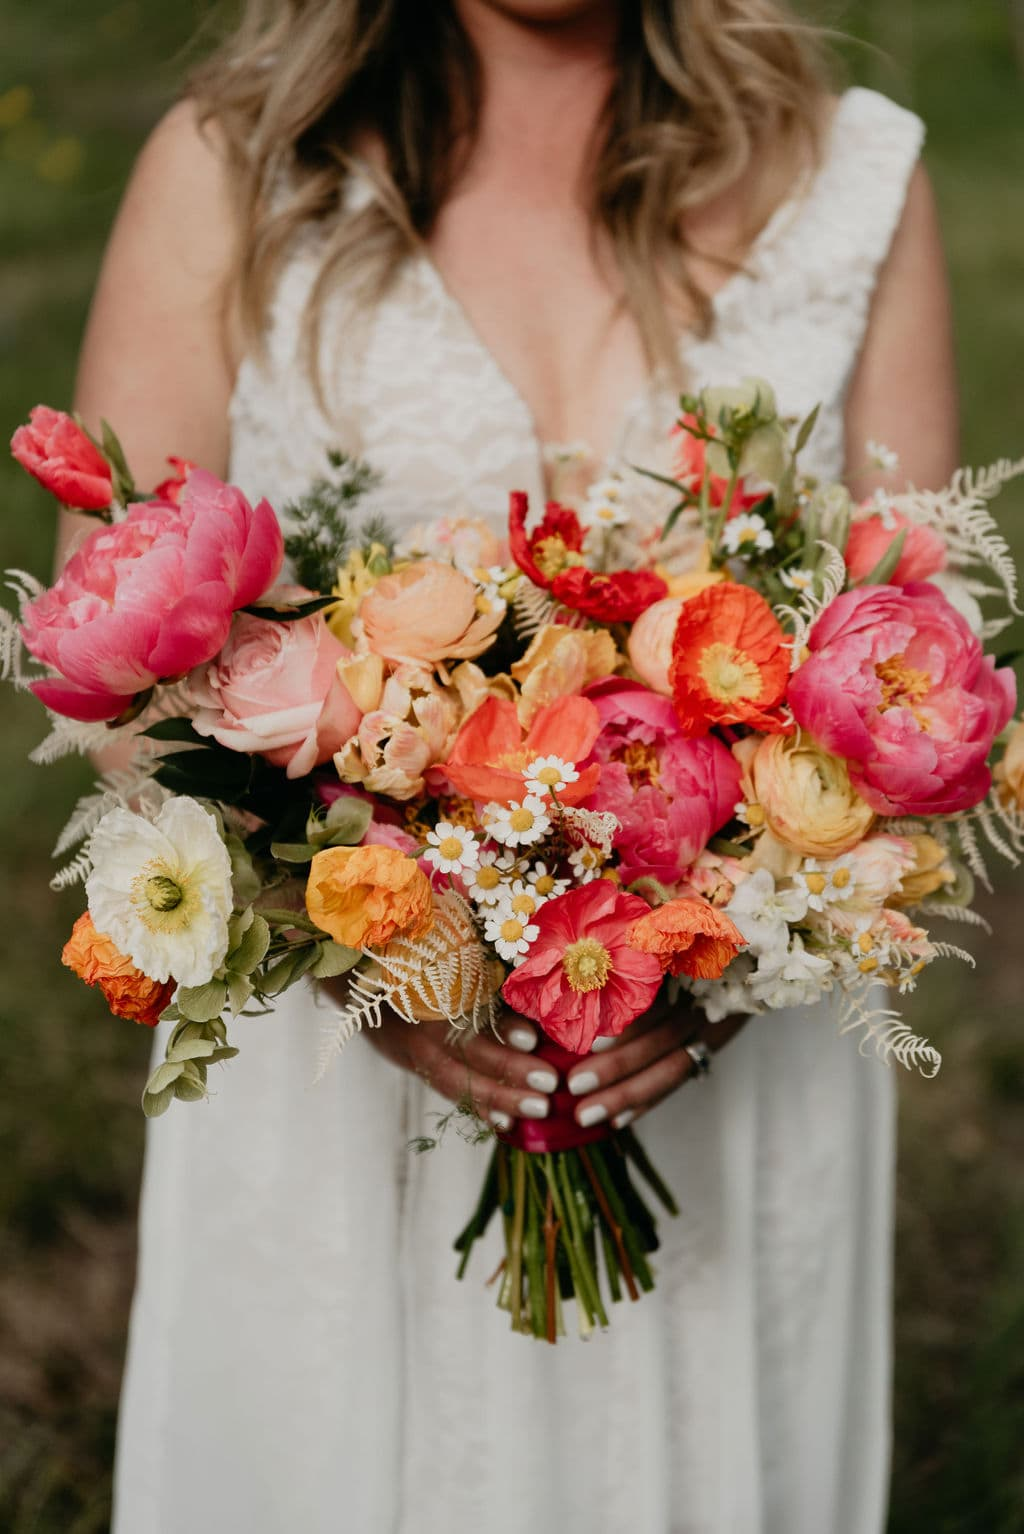 Bright Colored Summer Wedding Bouquet at Golden Colorado Elopement